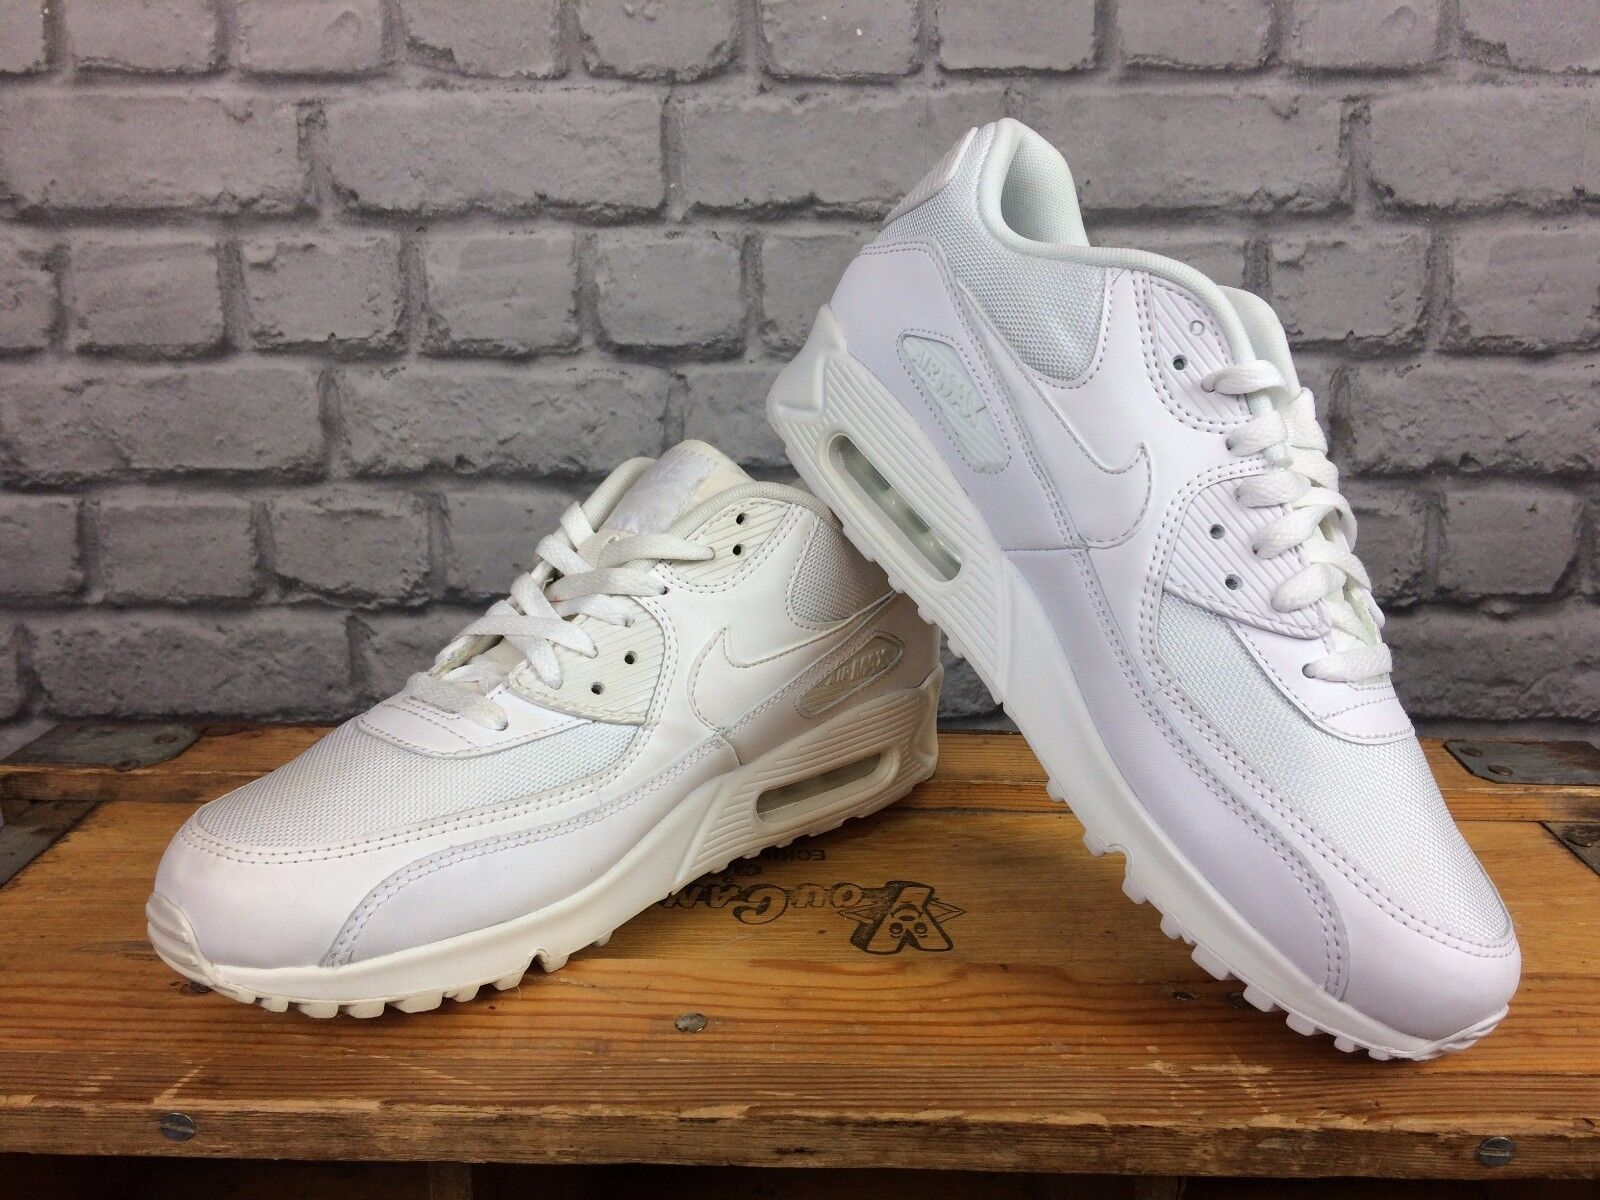 NIKE AIR MAX 90 MENS WHITE LEATHER MANY CROSSTOWN TRAINER RRP £100 MANY LEATHER SIZES cfa97f